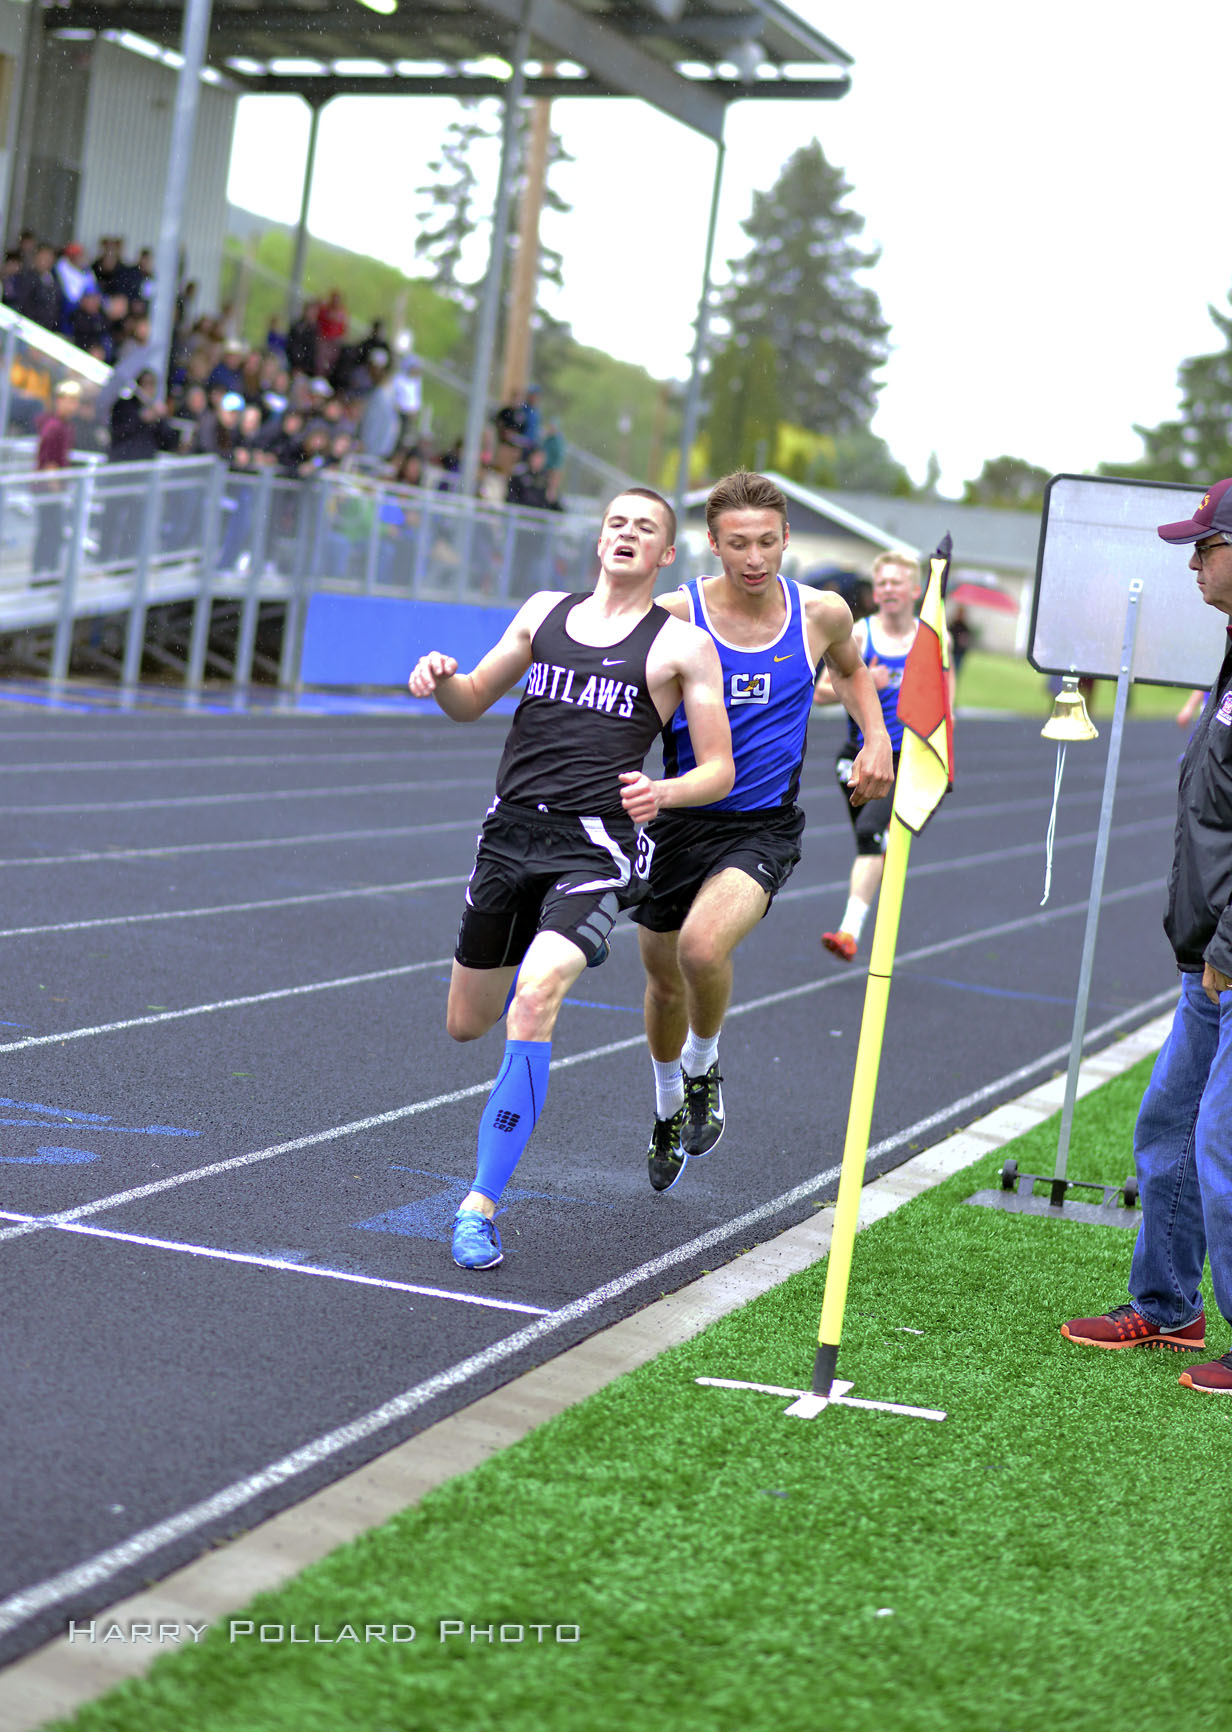 2017-05-11-sky-em-district-track-meet-07